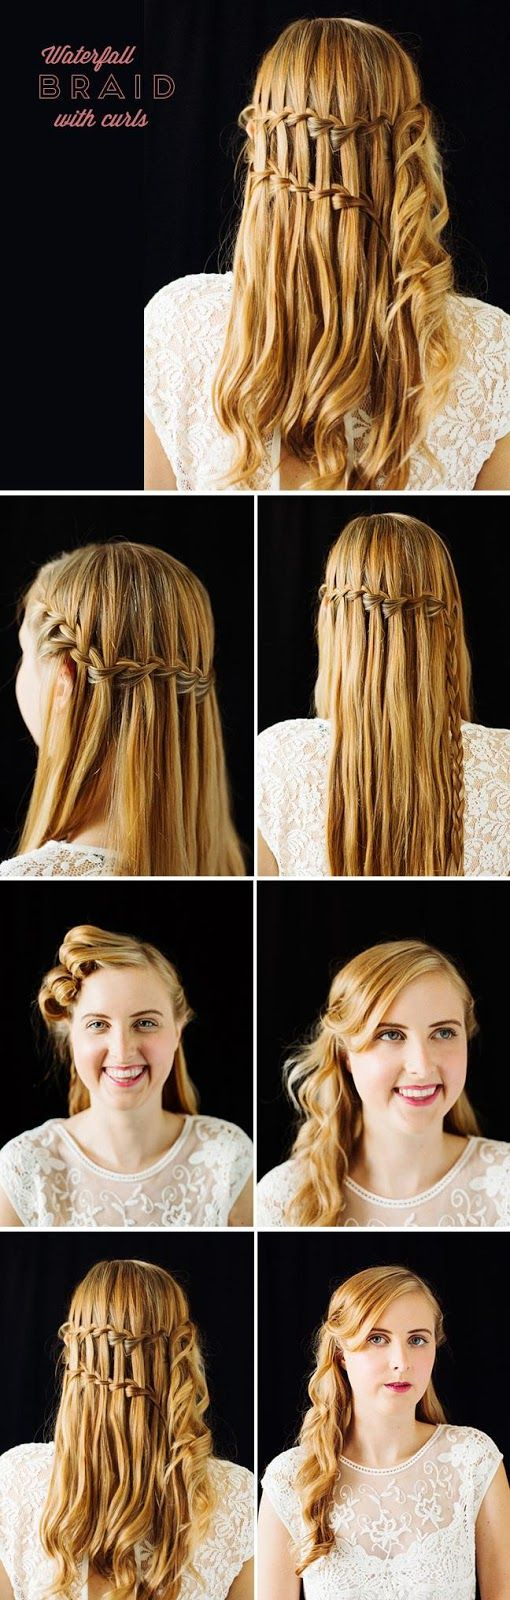 16 best ugly hair styles images on pinterest | hairstyles, hair